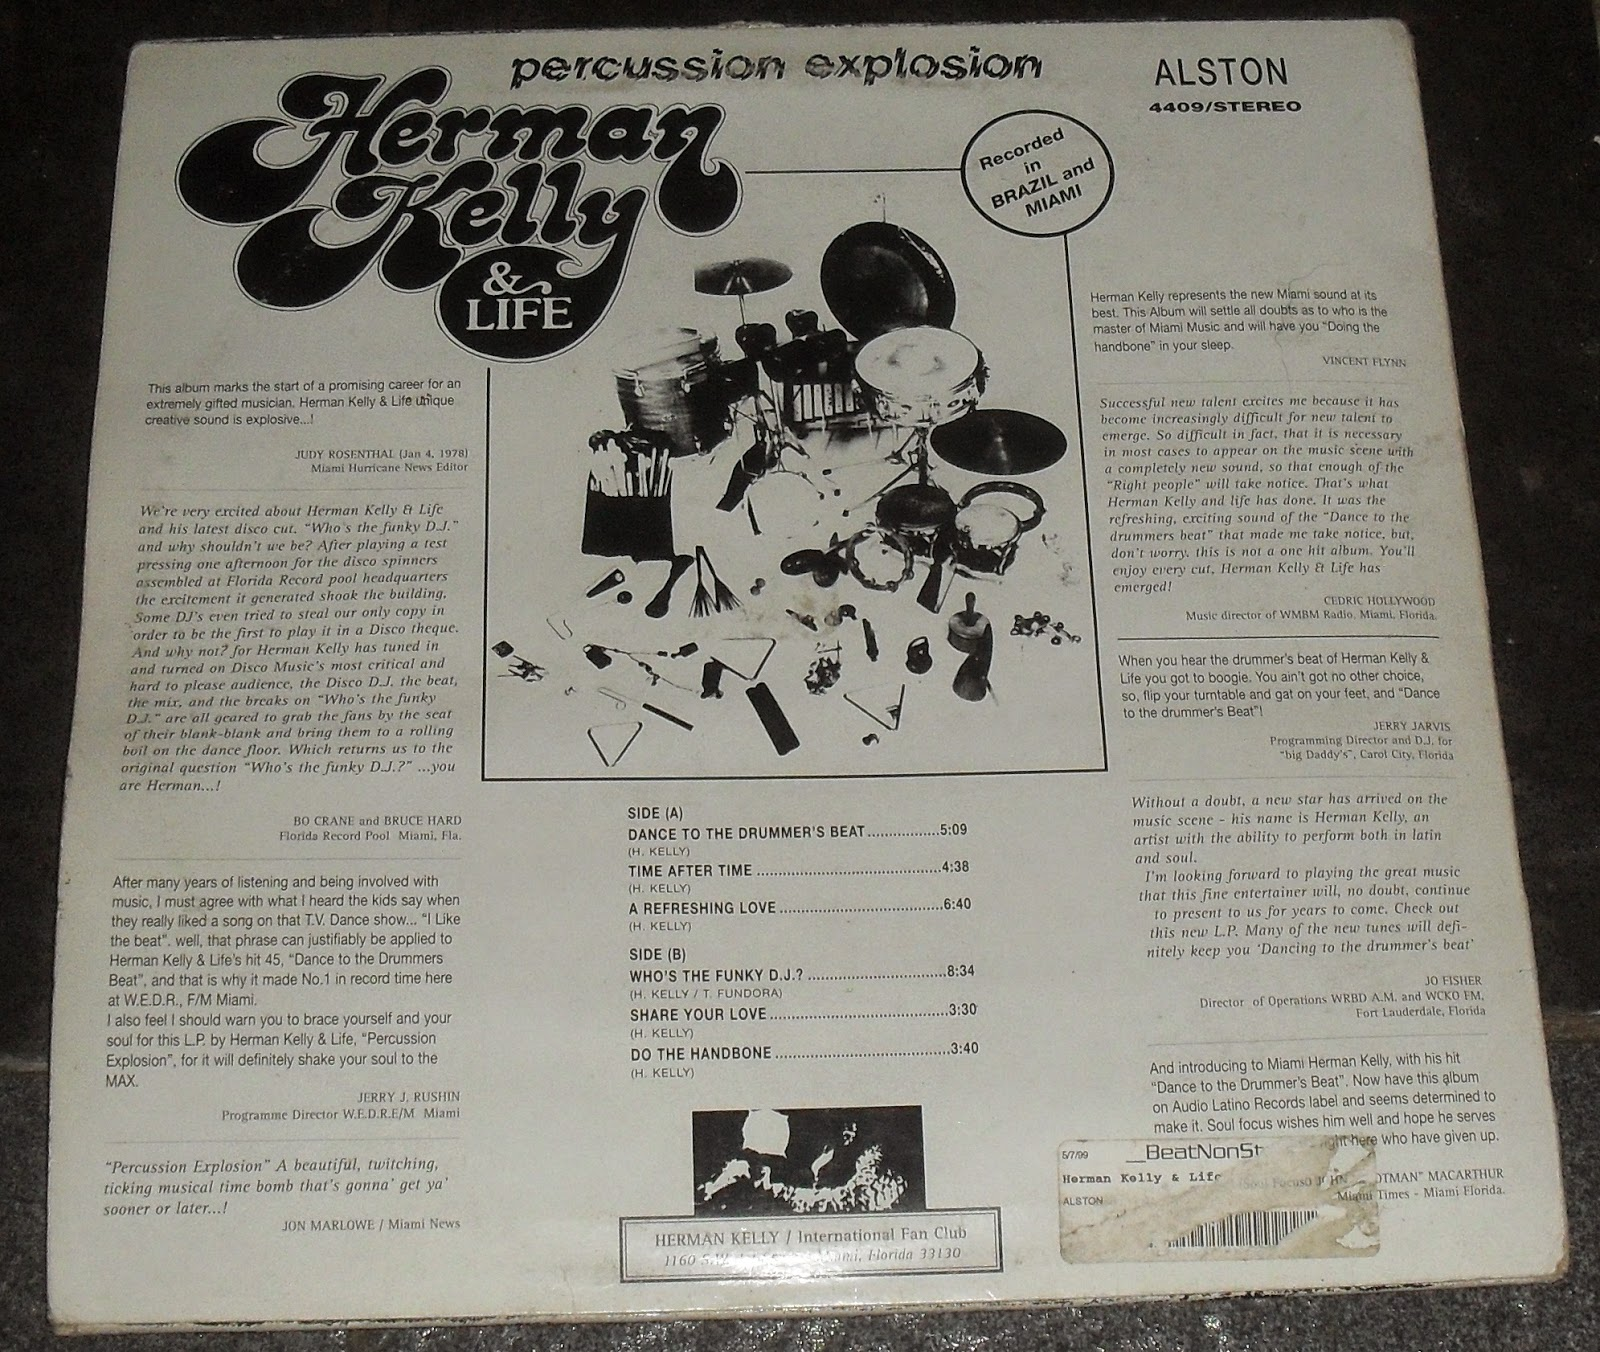 Herman Kelly Life Dance To The Drummers Beat